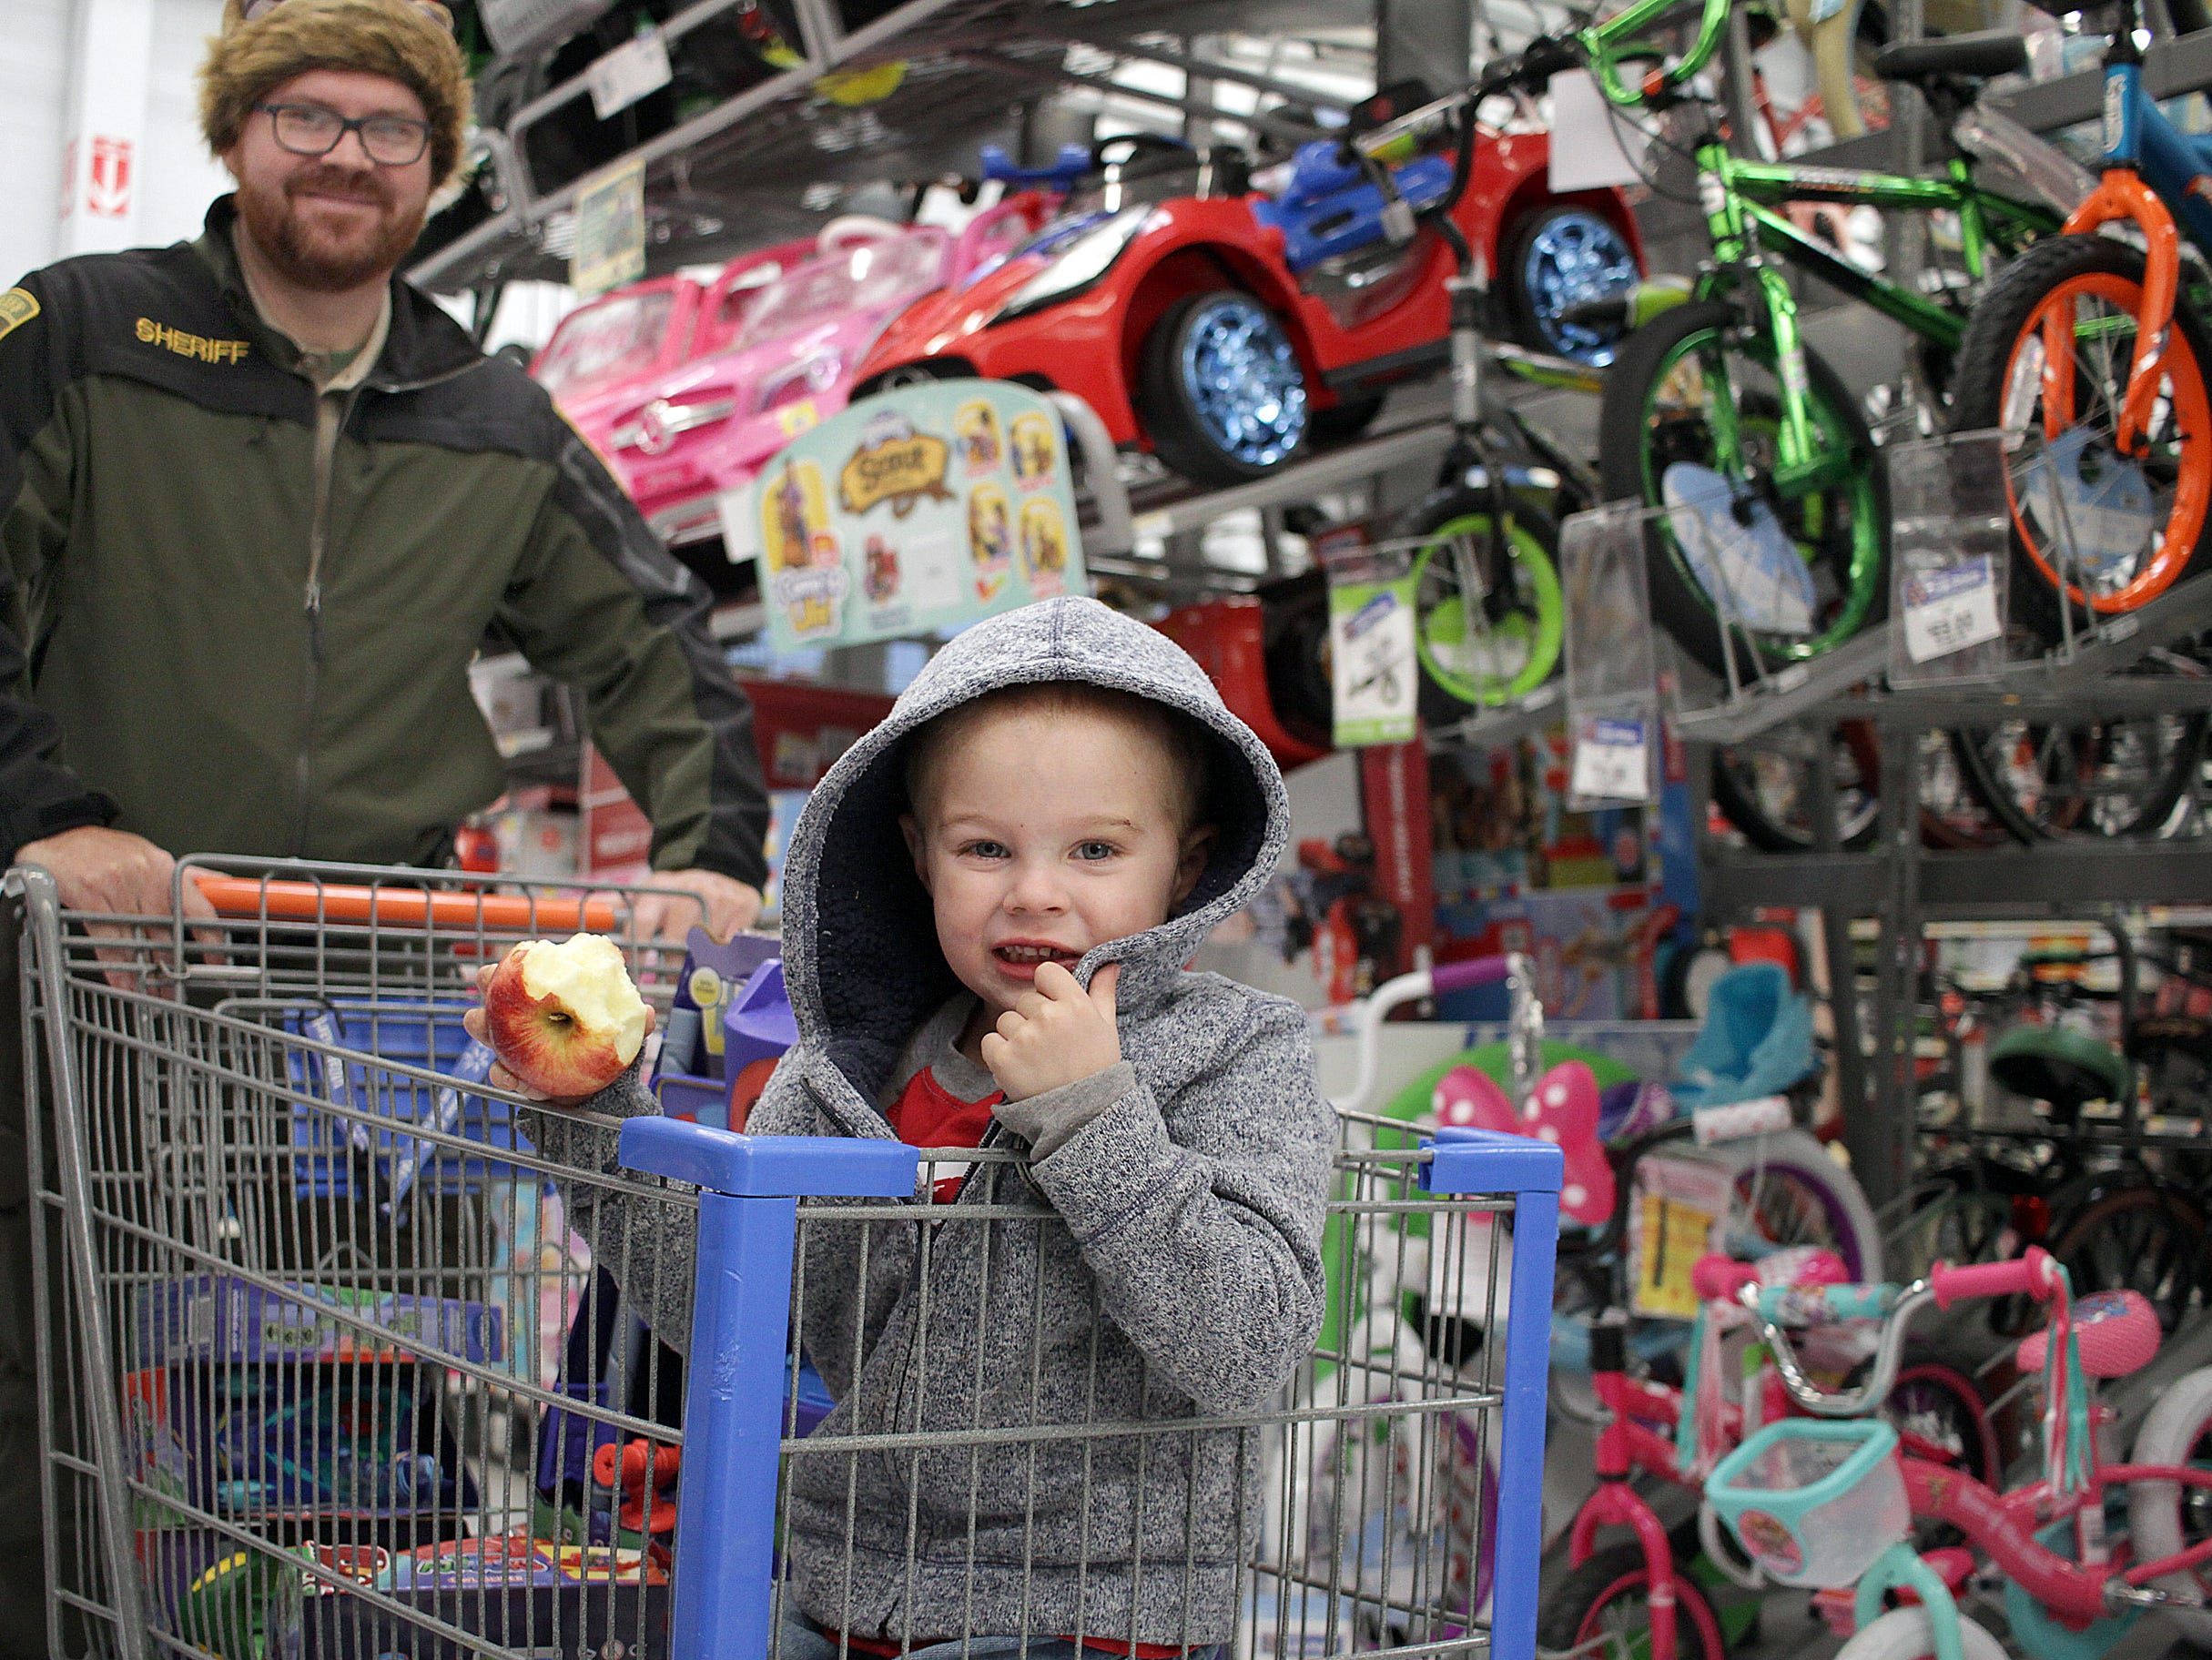 Officer Ryan Hawkins shops with Thomas during Shop with a Cop in Ashland City on Saturday, December 15, 2018.